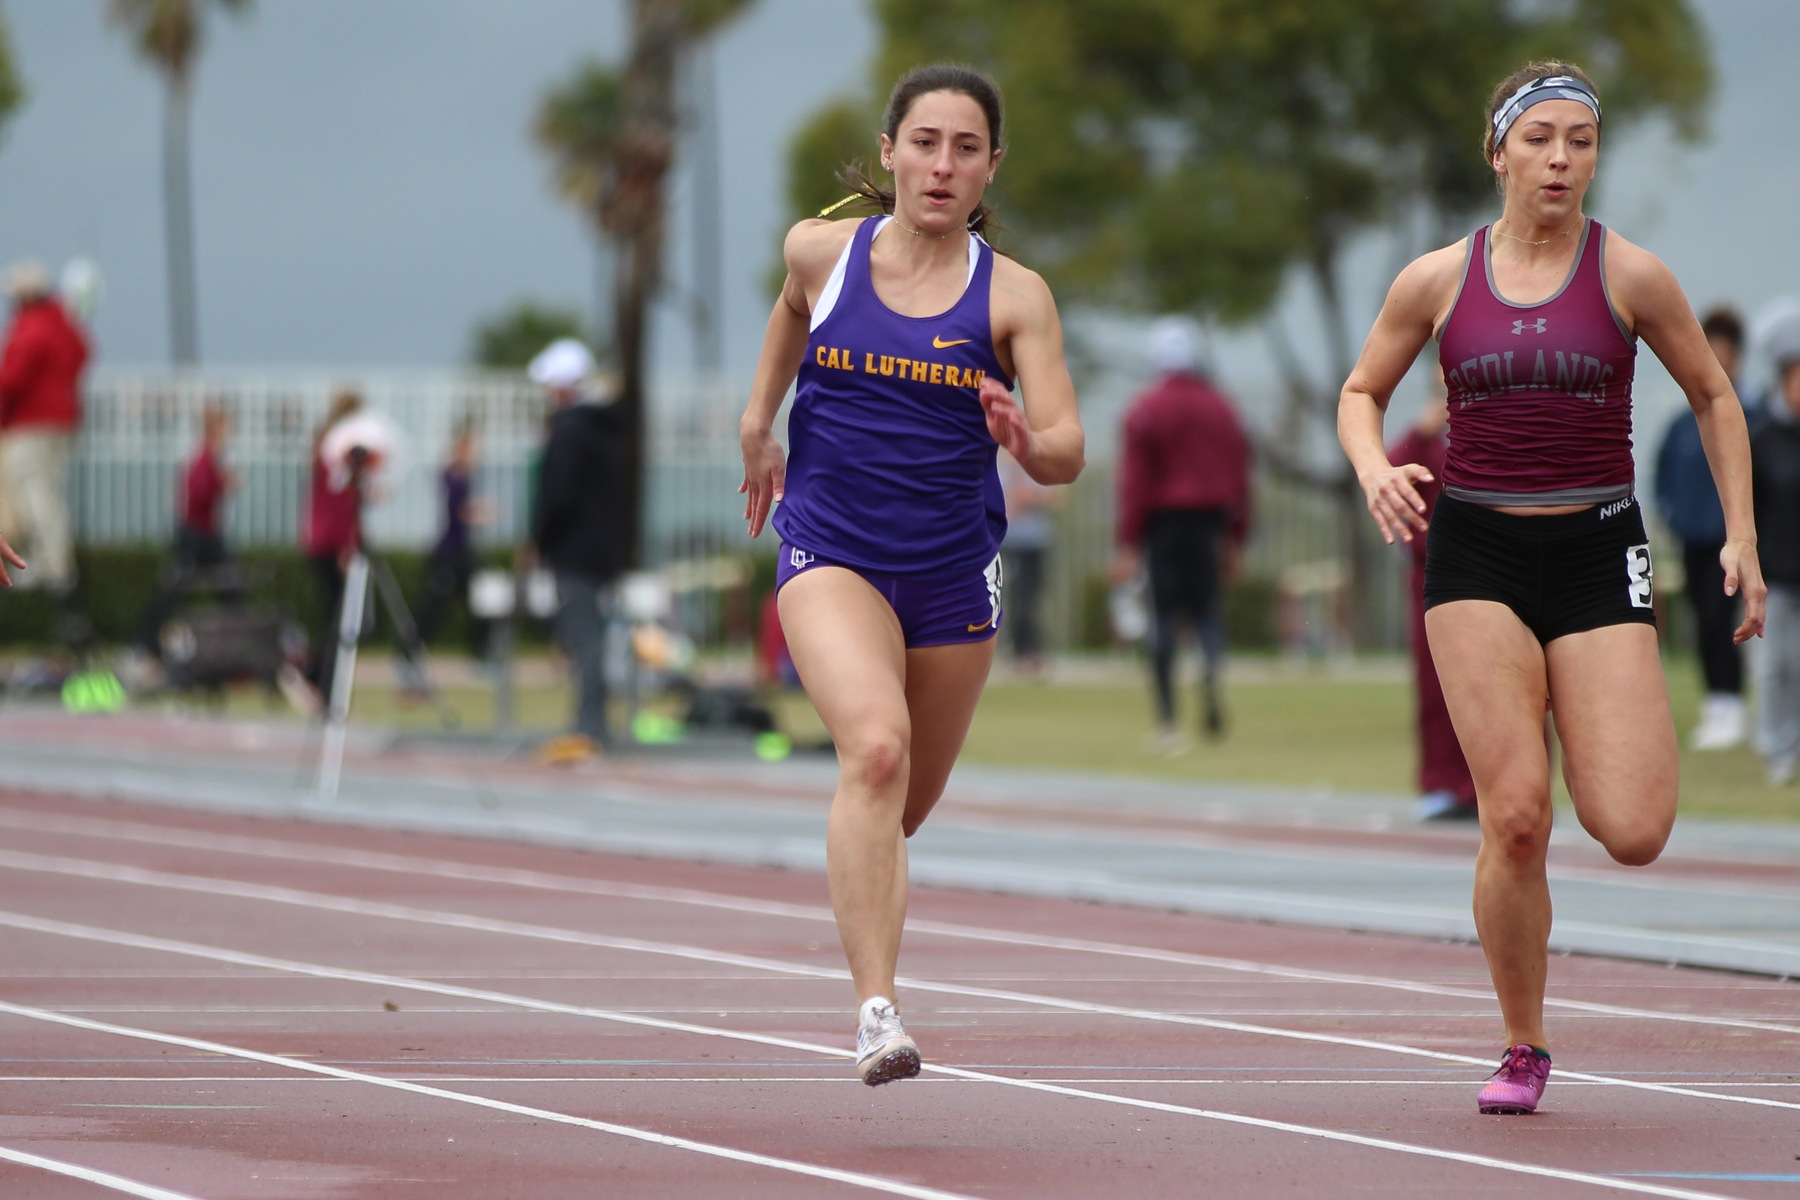 Regals Claim Six First-Place Finishes at SCIAC Multi-Dual No. 2